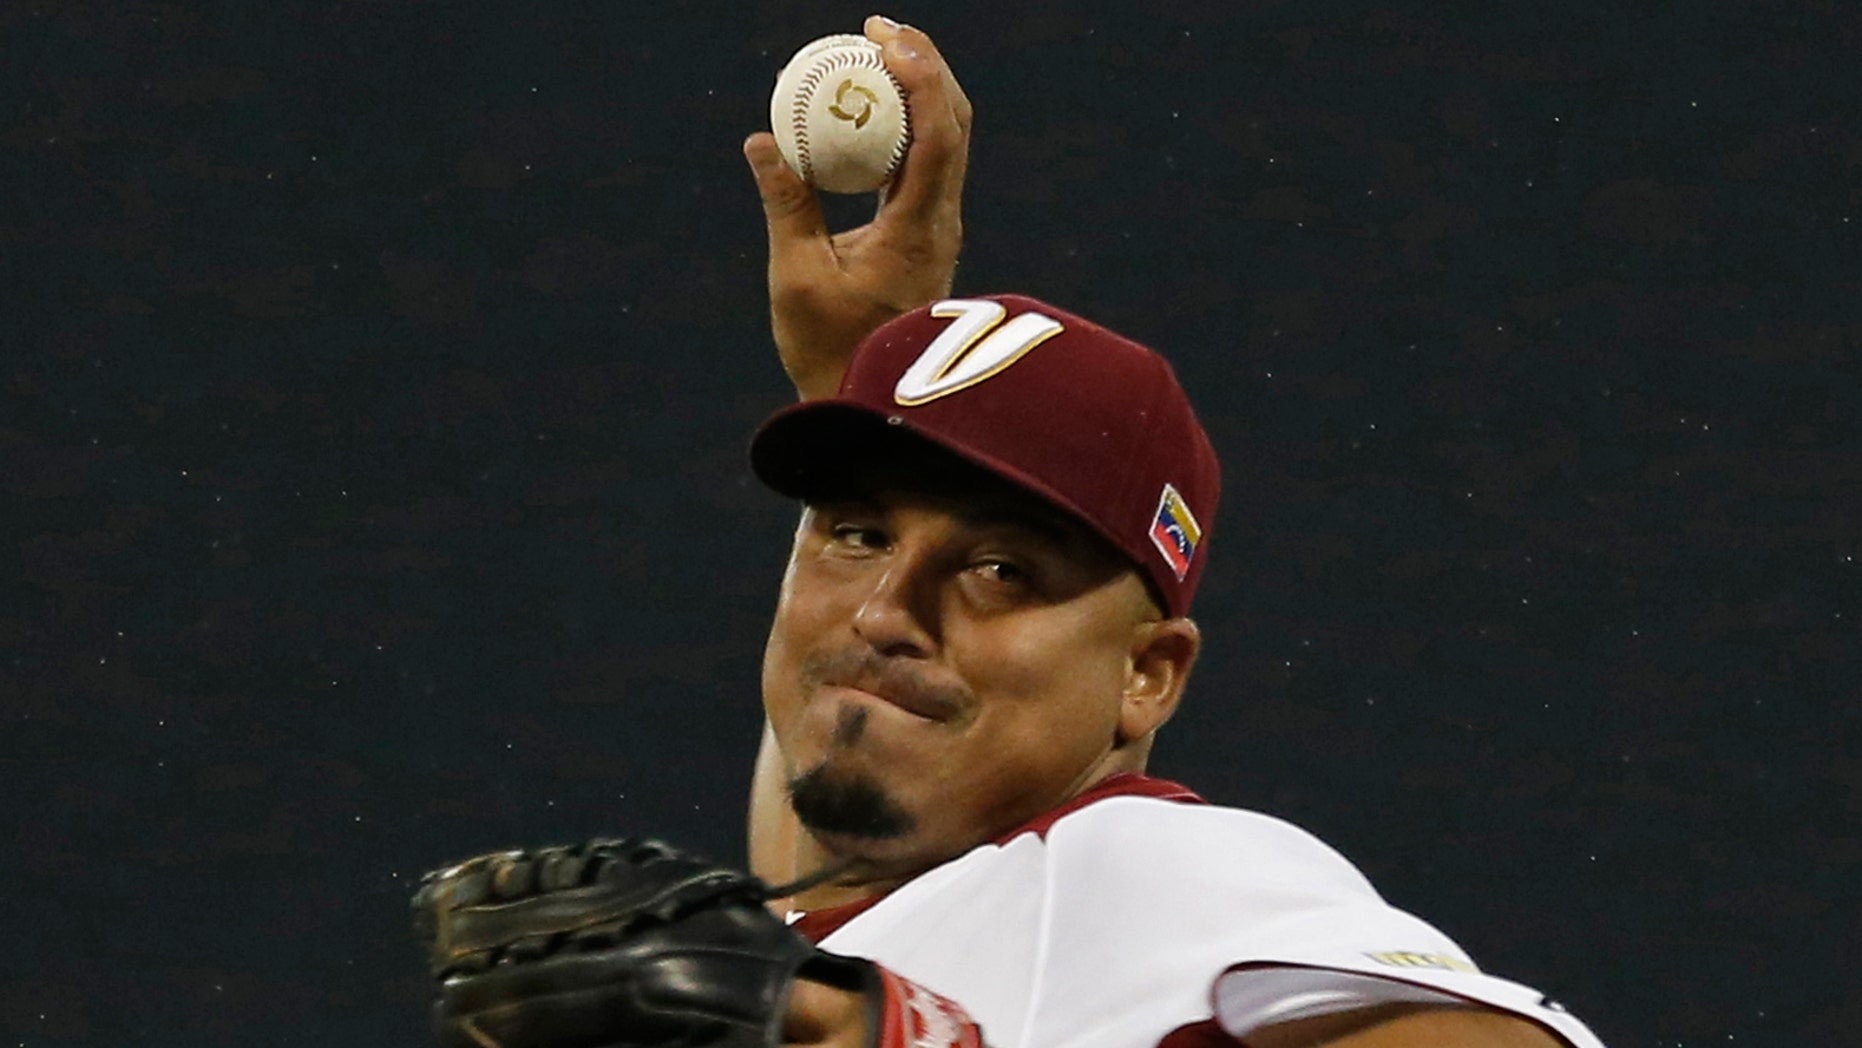 In this March 9, 2013 photo, Venezuela starting pitcher Carlos Zambrano throws in the first inning of a World Baseball Classic first round game against Puerto Rico in San Juan, Puerto Rico.